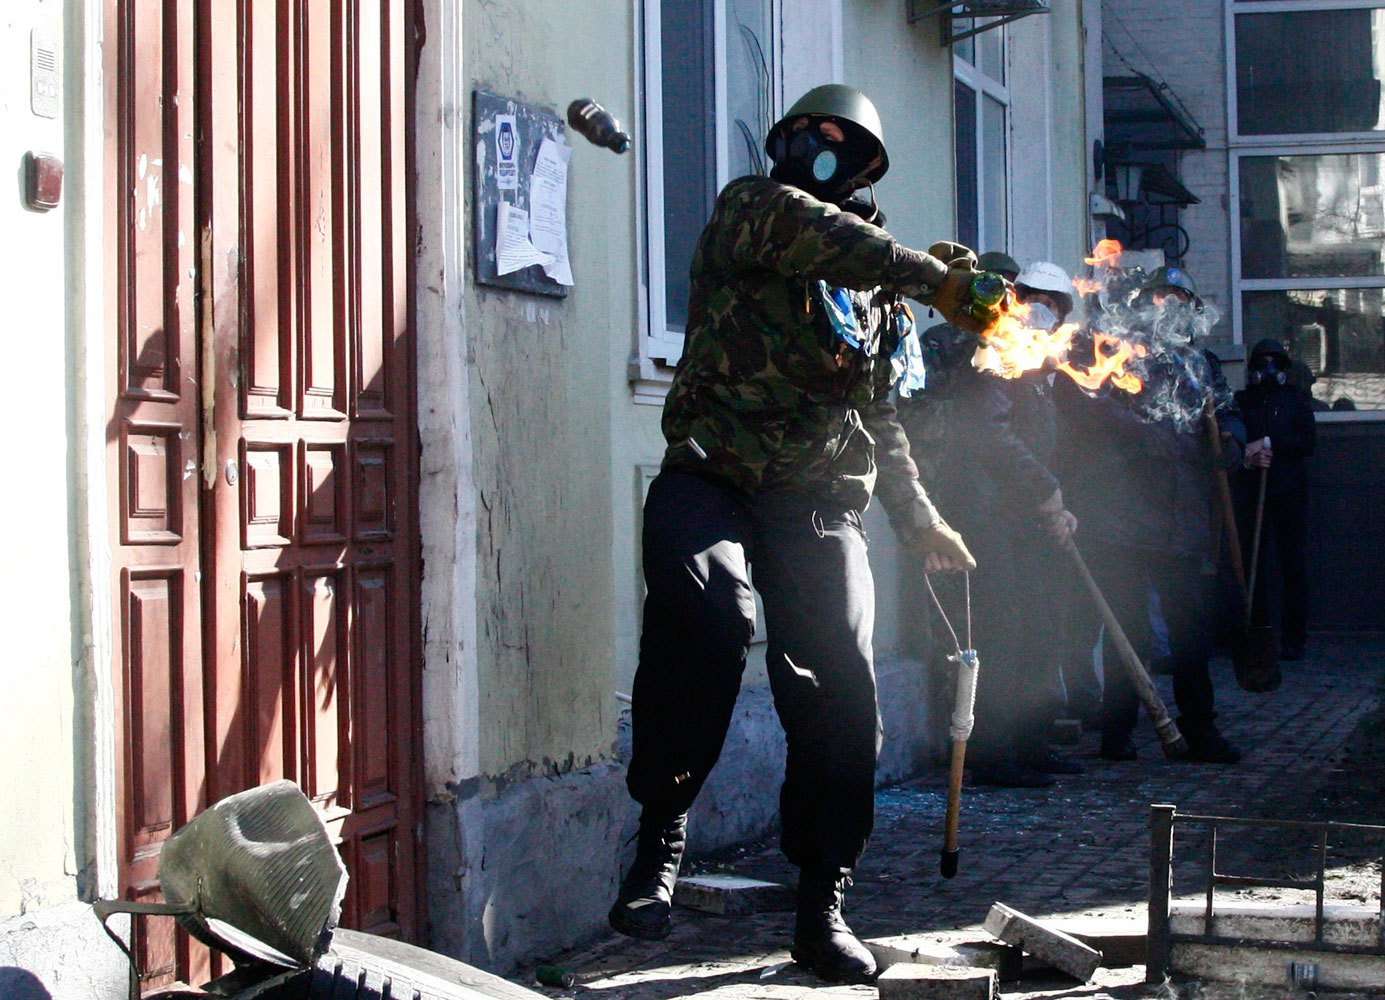 An anti-government protester holds a Molotov cocktail during clashes with Interior Ministry members in Kiev, on Feb. 18, 2014.